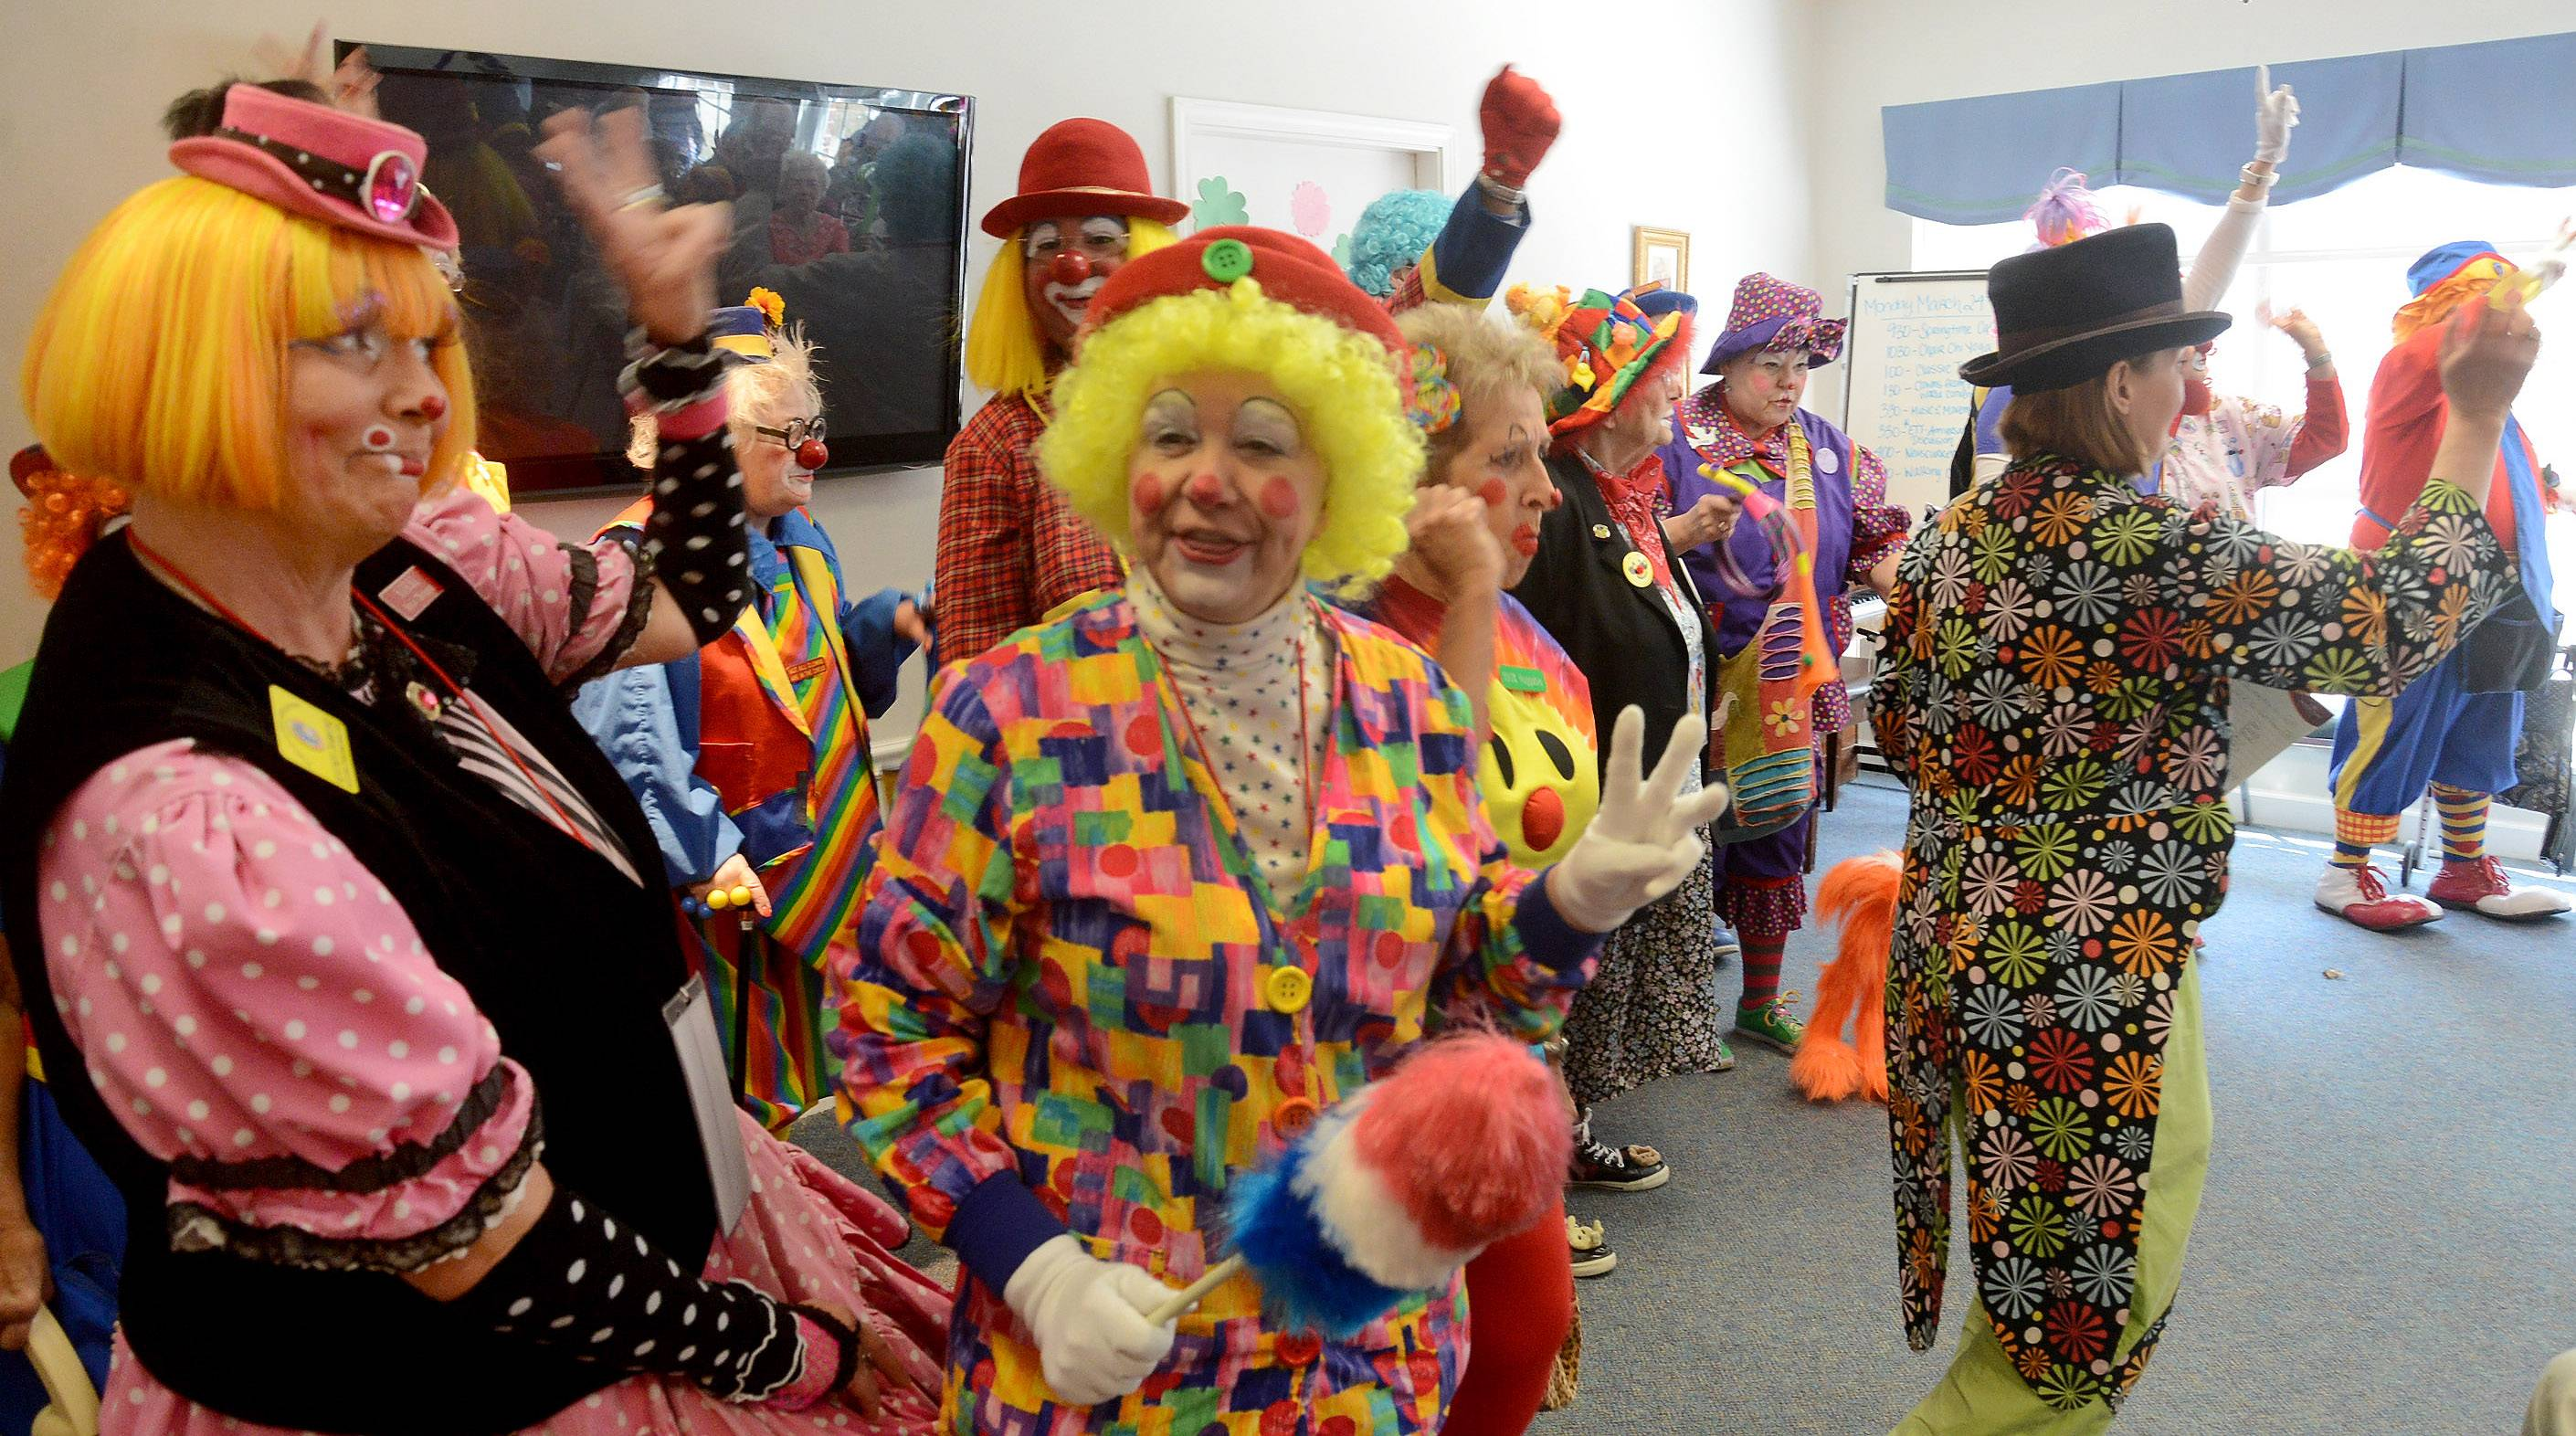 20 clowns in town for the World Clown Association's convention visited Alzheimer's patients Monday in the Arden Courts of Northbrook.